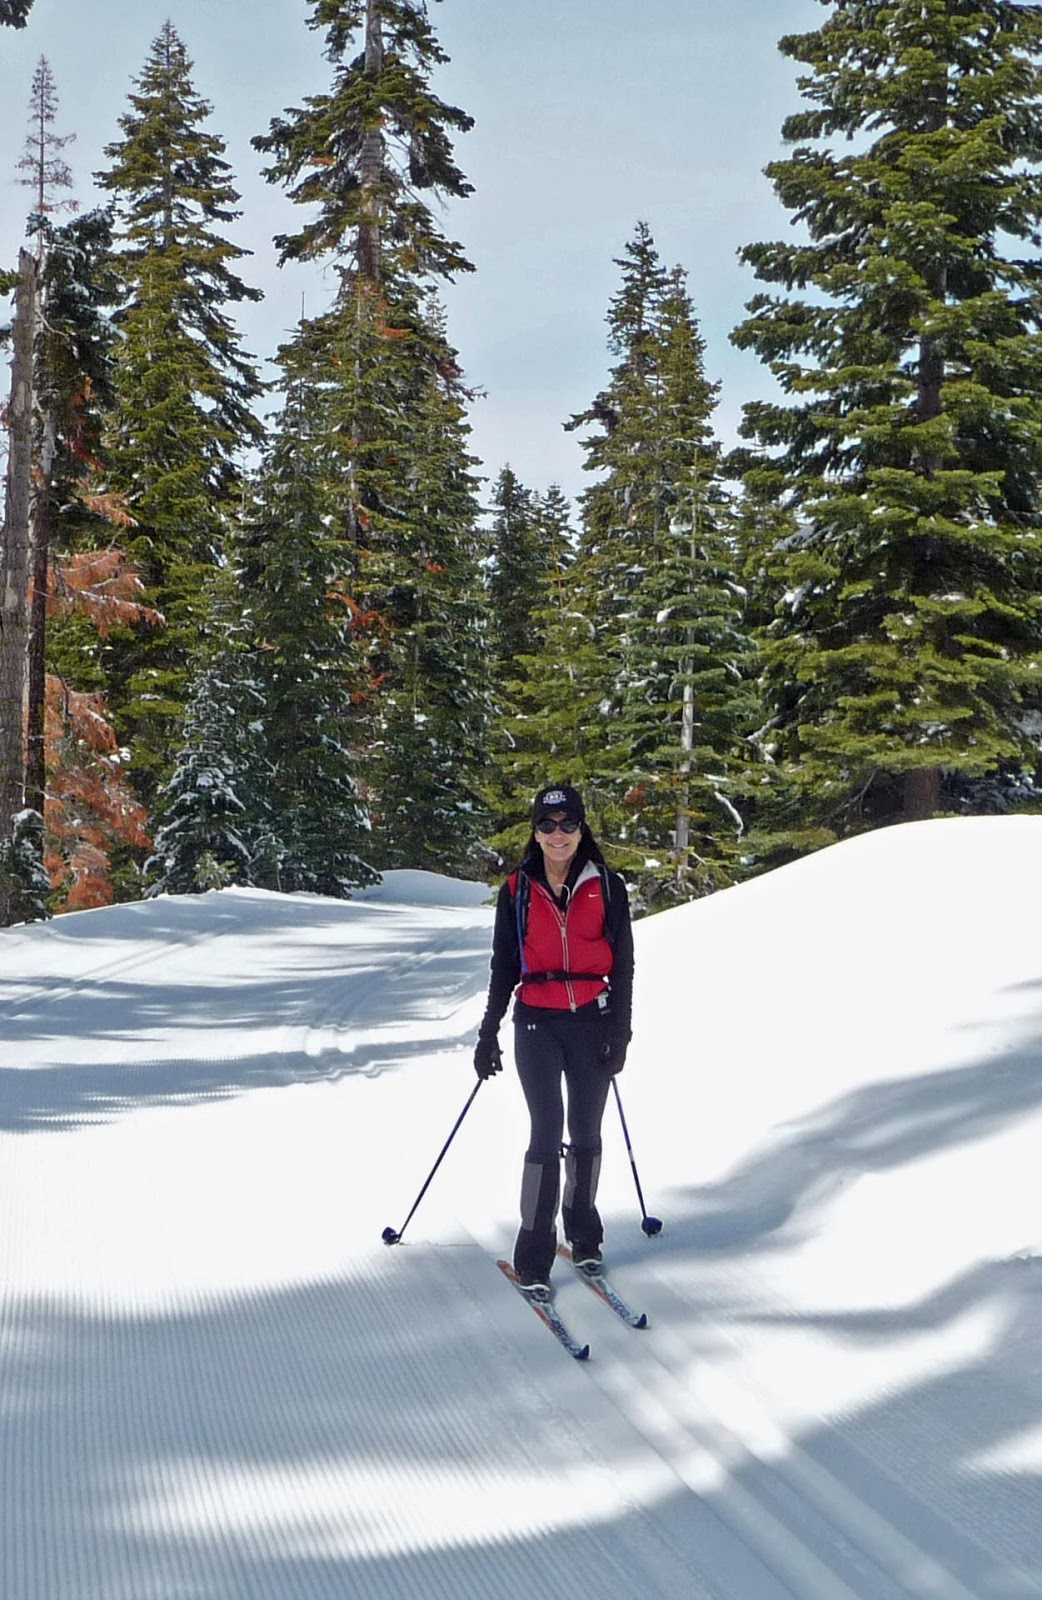 Lake Tahoe cross country ski report